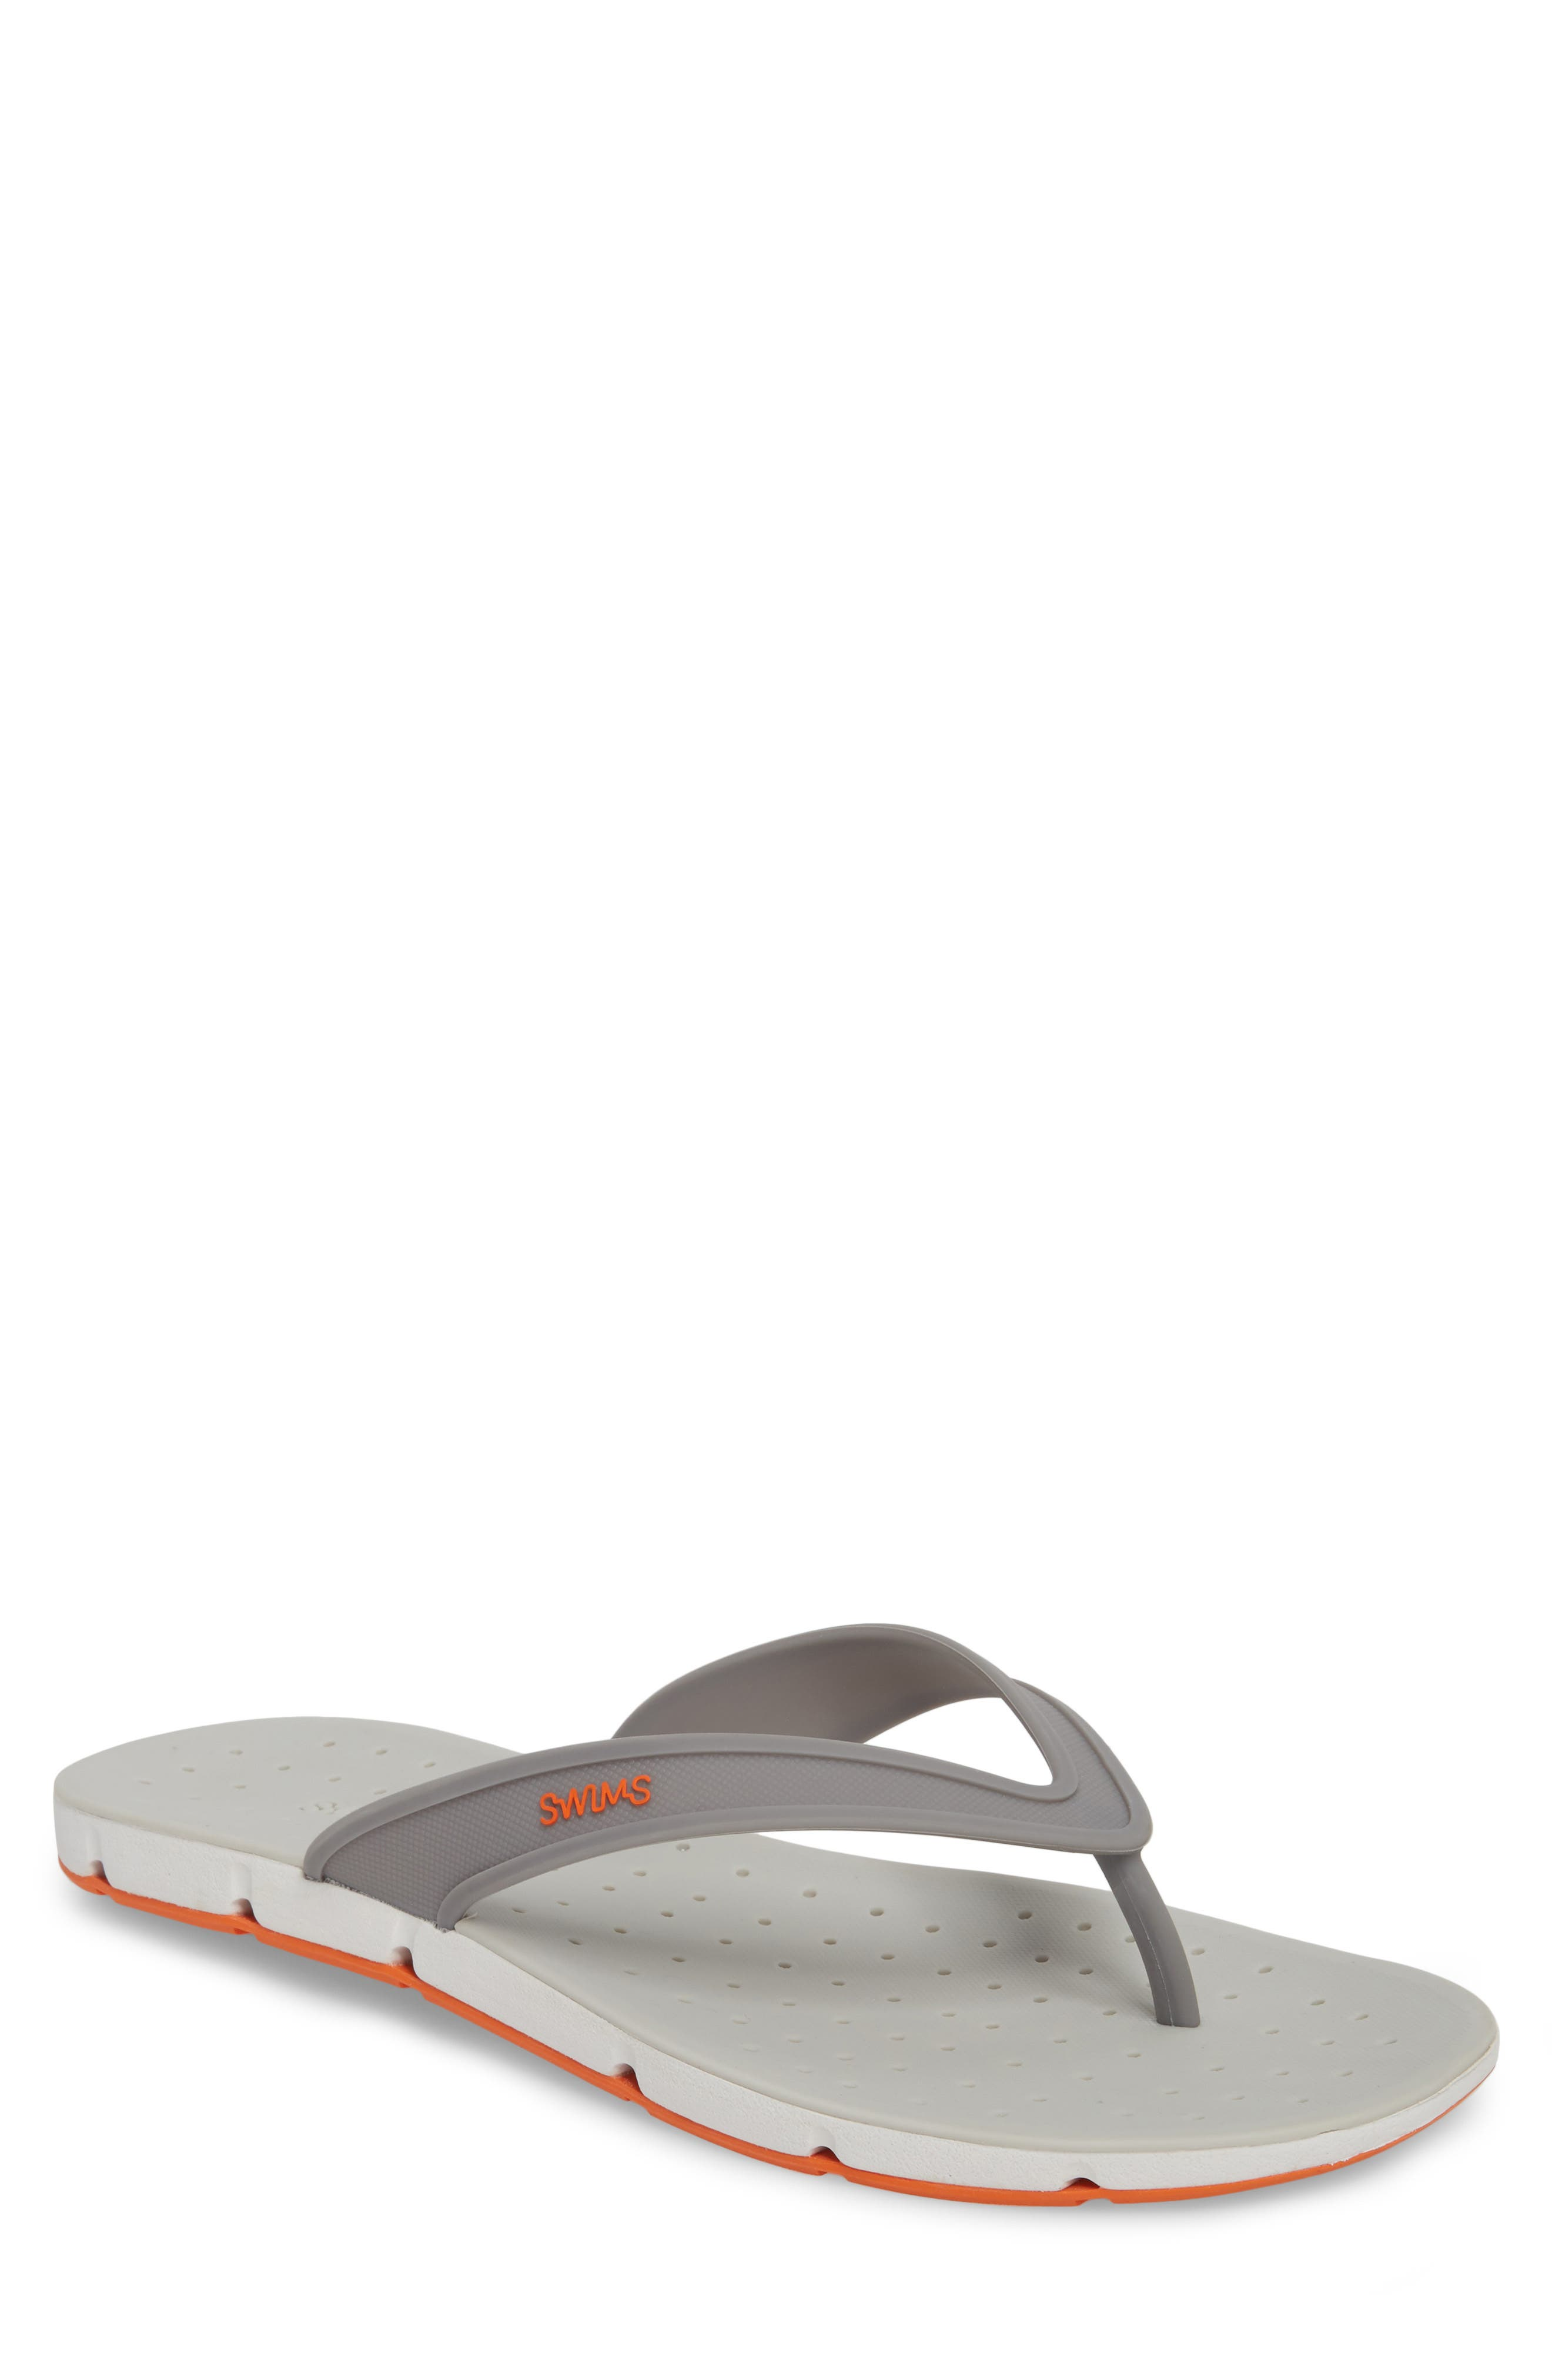 Breeze Flip Flop,                         Main,                         color, GRAY / WHITE / ORANGE